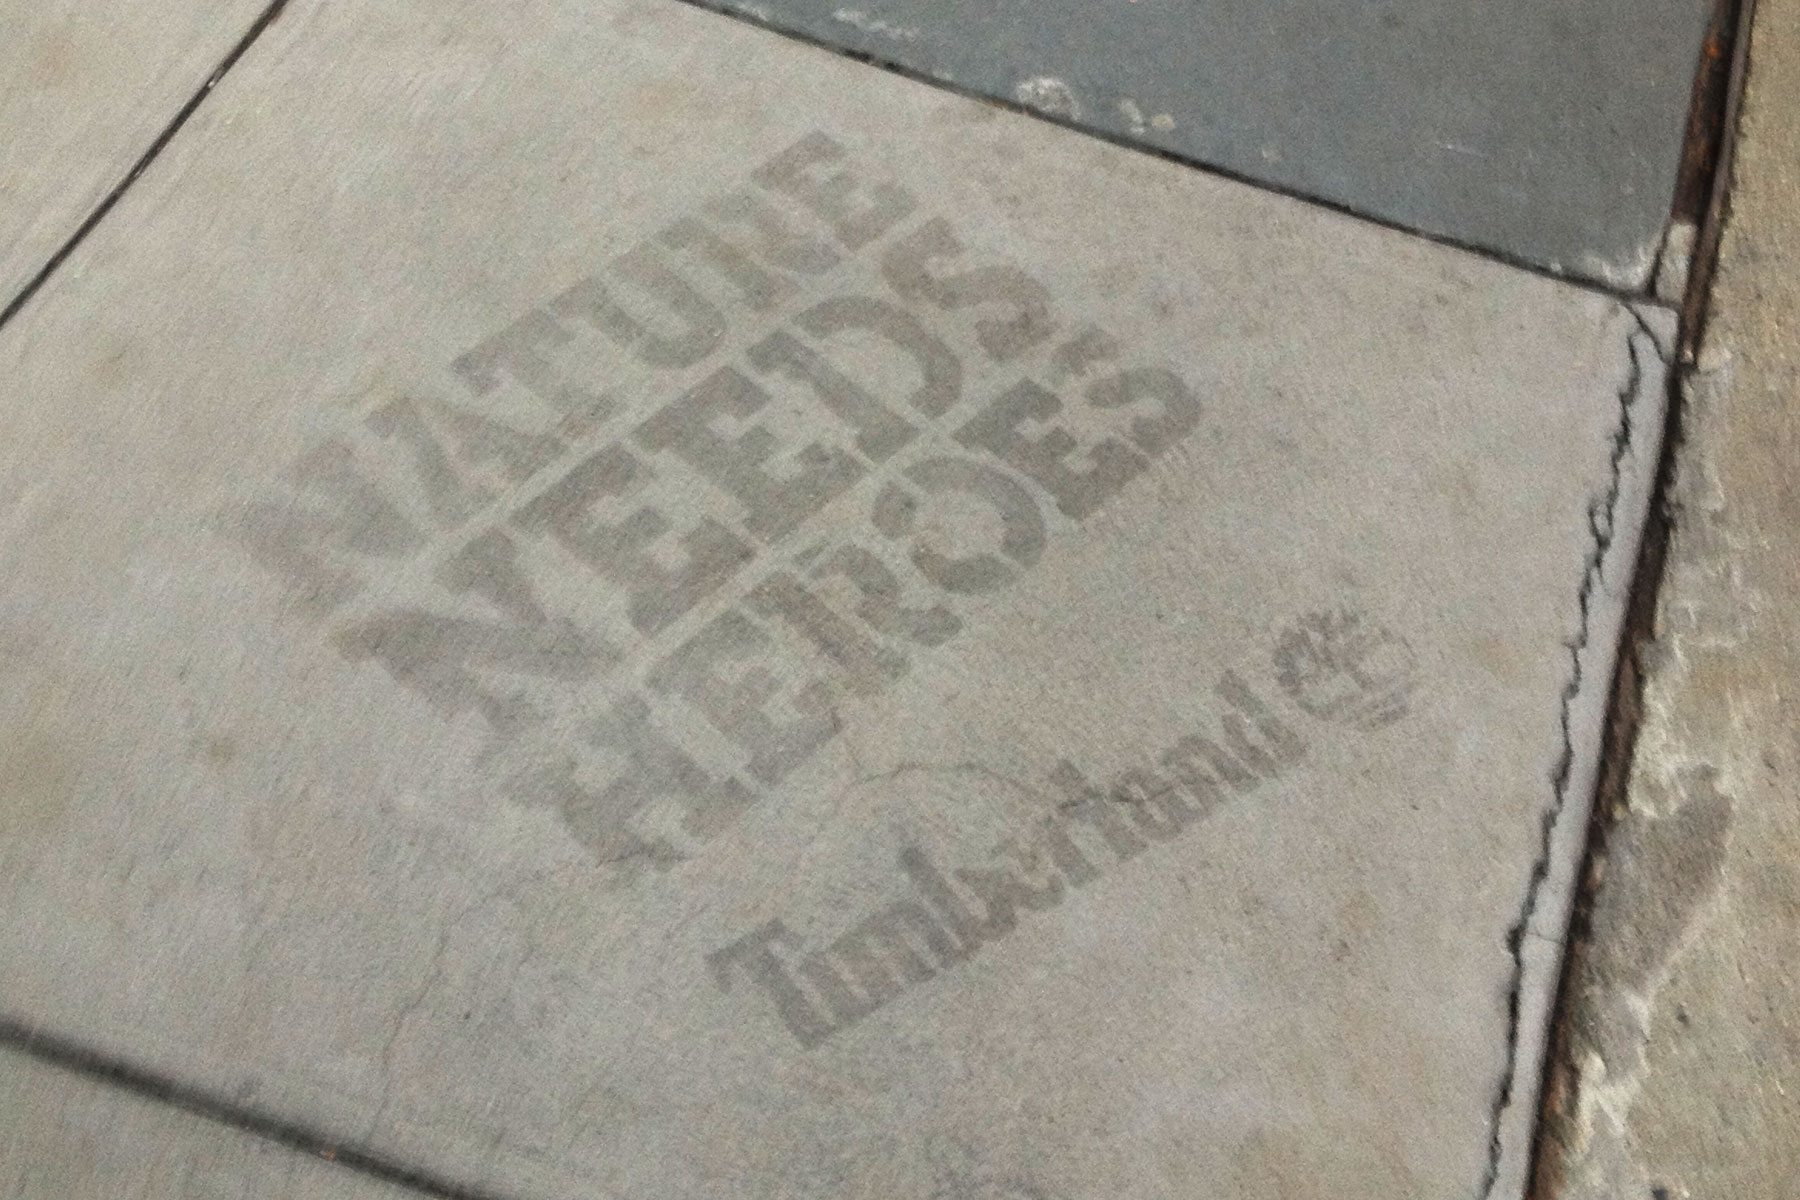 Sidewalk Powerwashing Green sidewalk ads